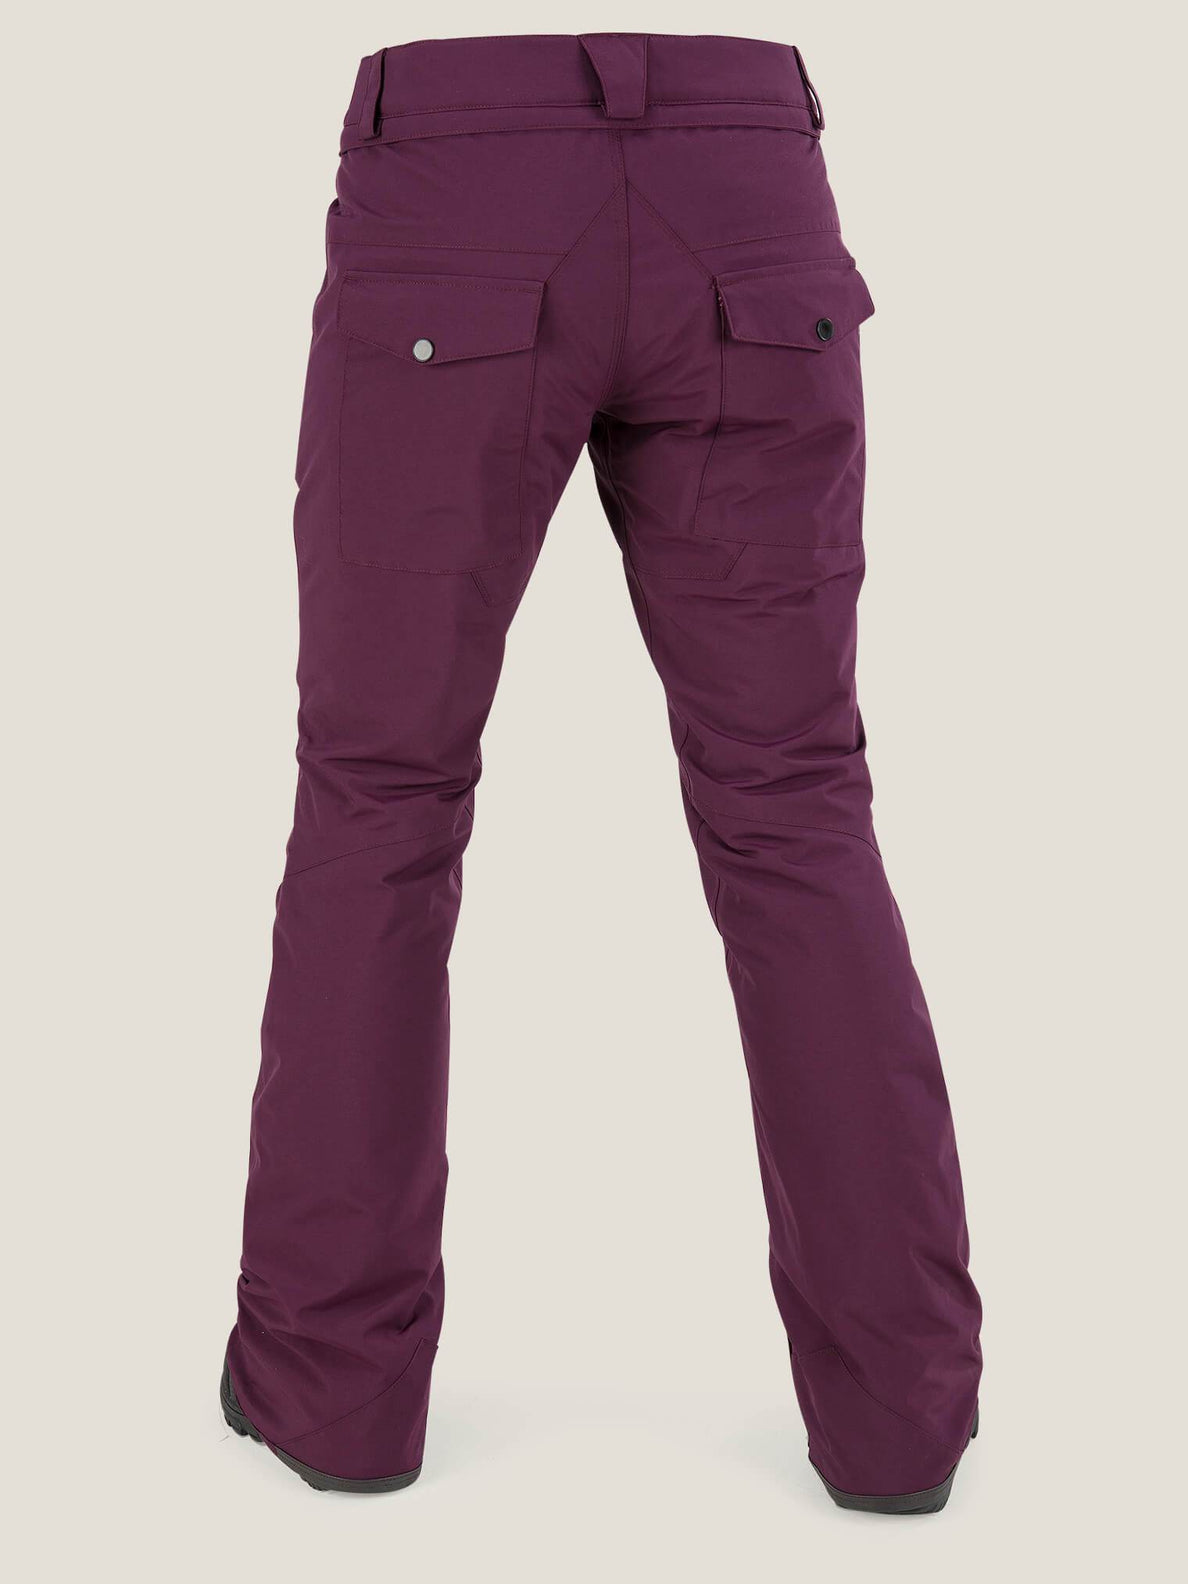 Knox Insulated Gore-tex® Pant In Winter Orchid, Back View